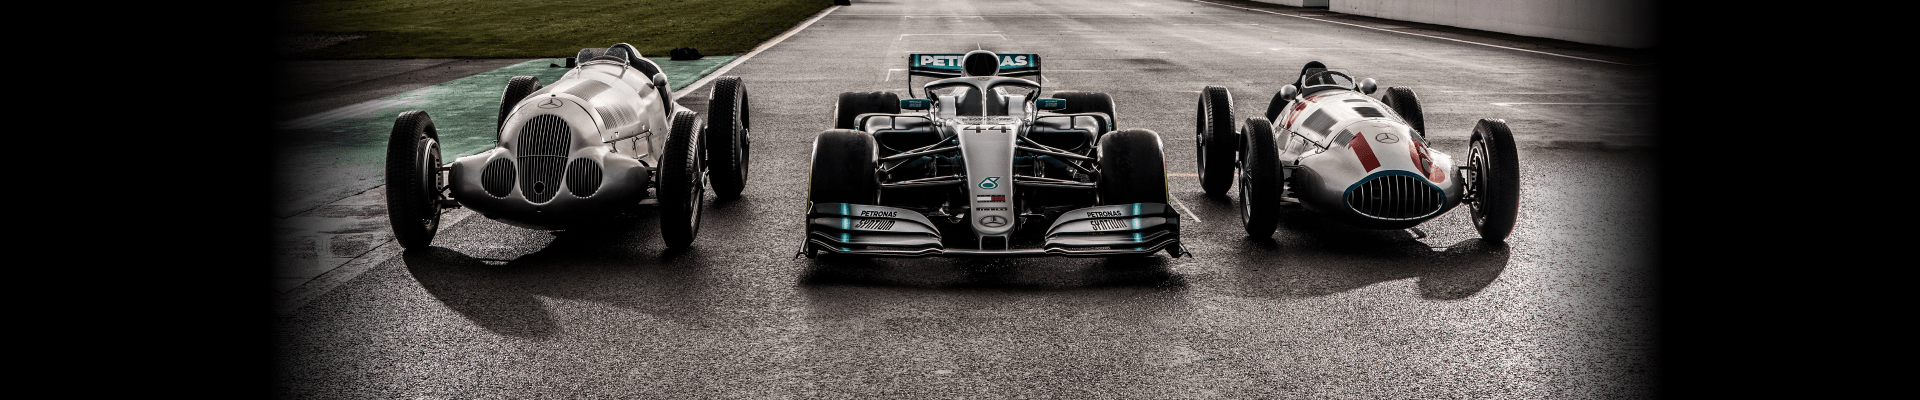 Continuous Innovation & Collaboration to Create the Optimal Formula One Car